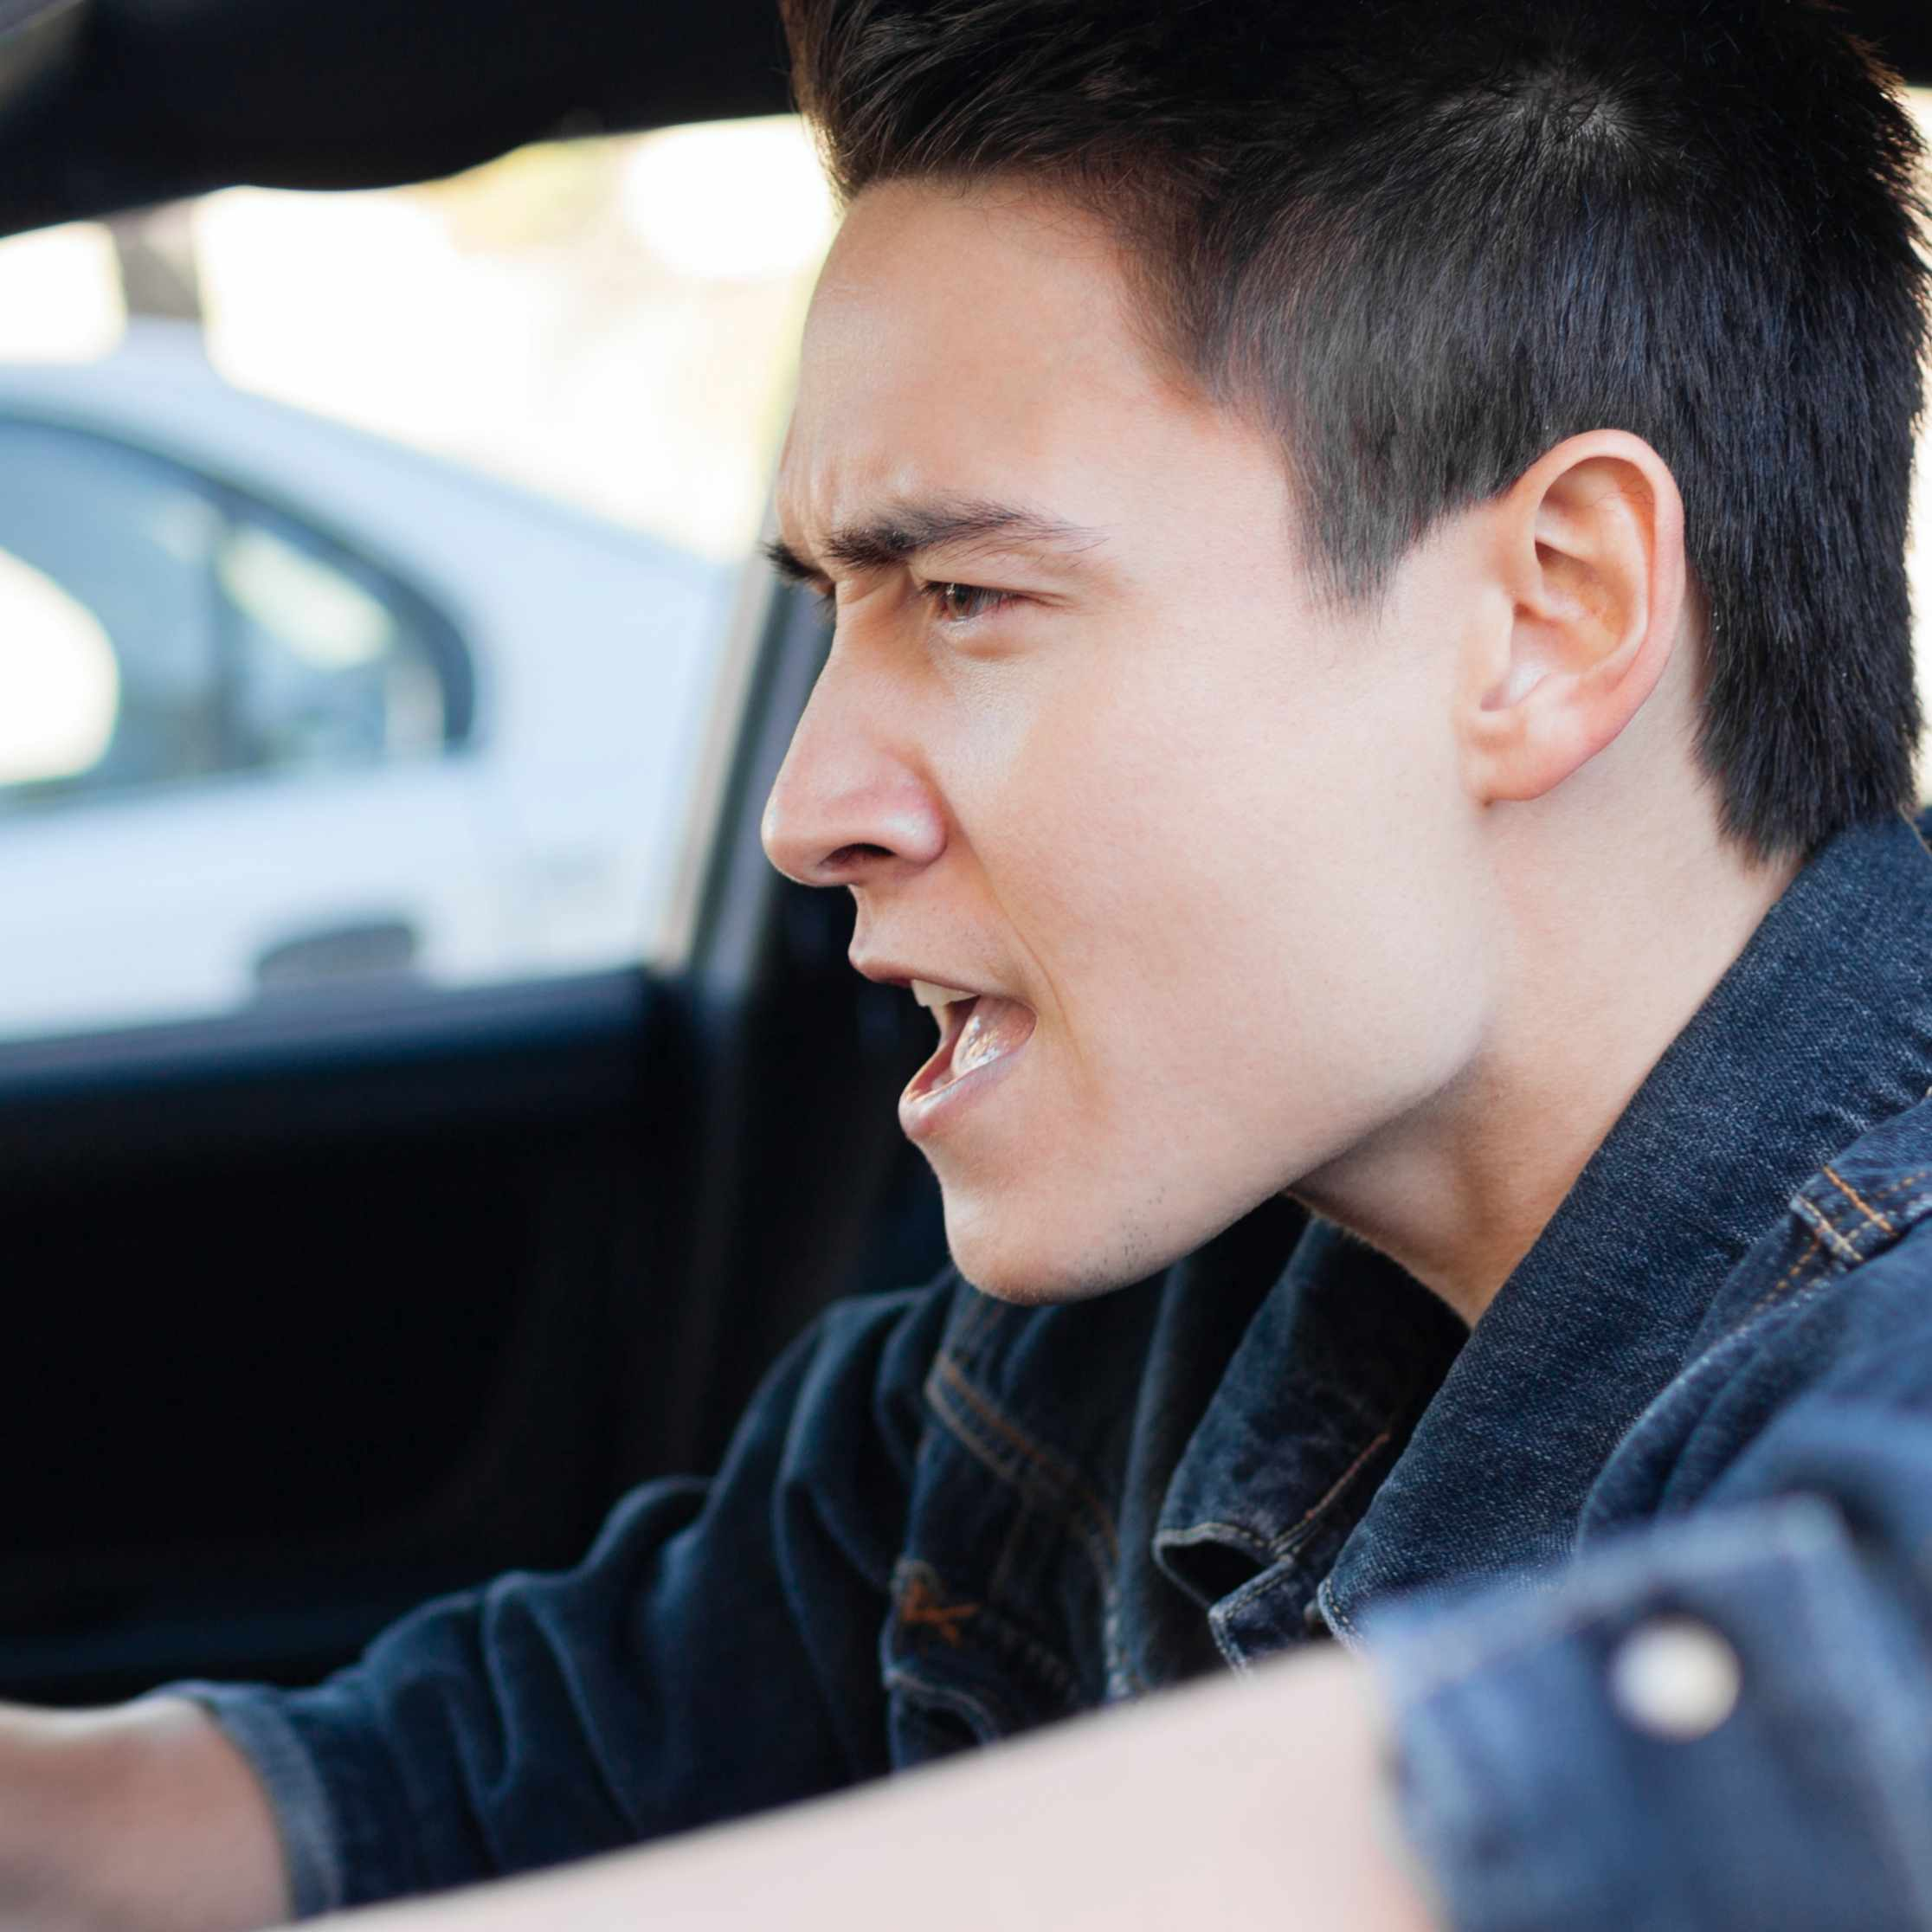 a young, angry man driving in a car demonstrating road rage behind the wheel